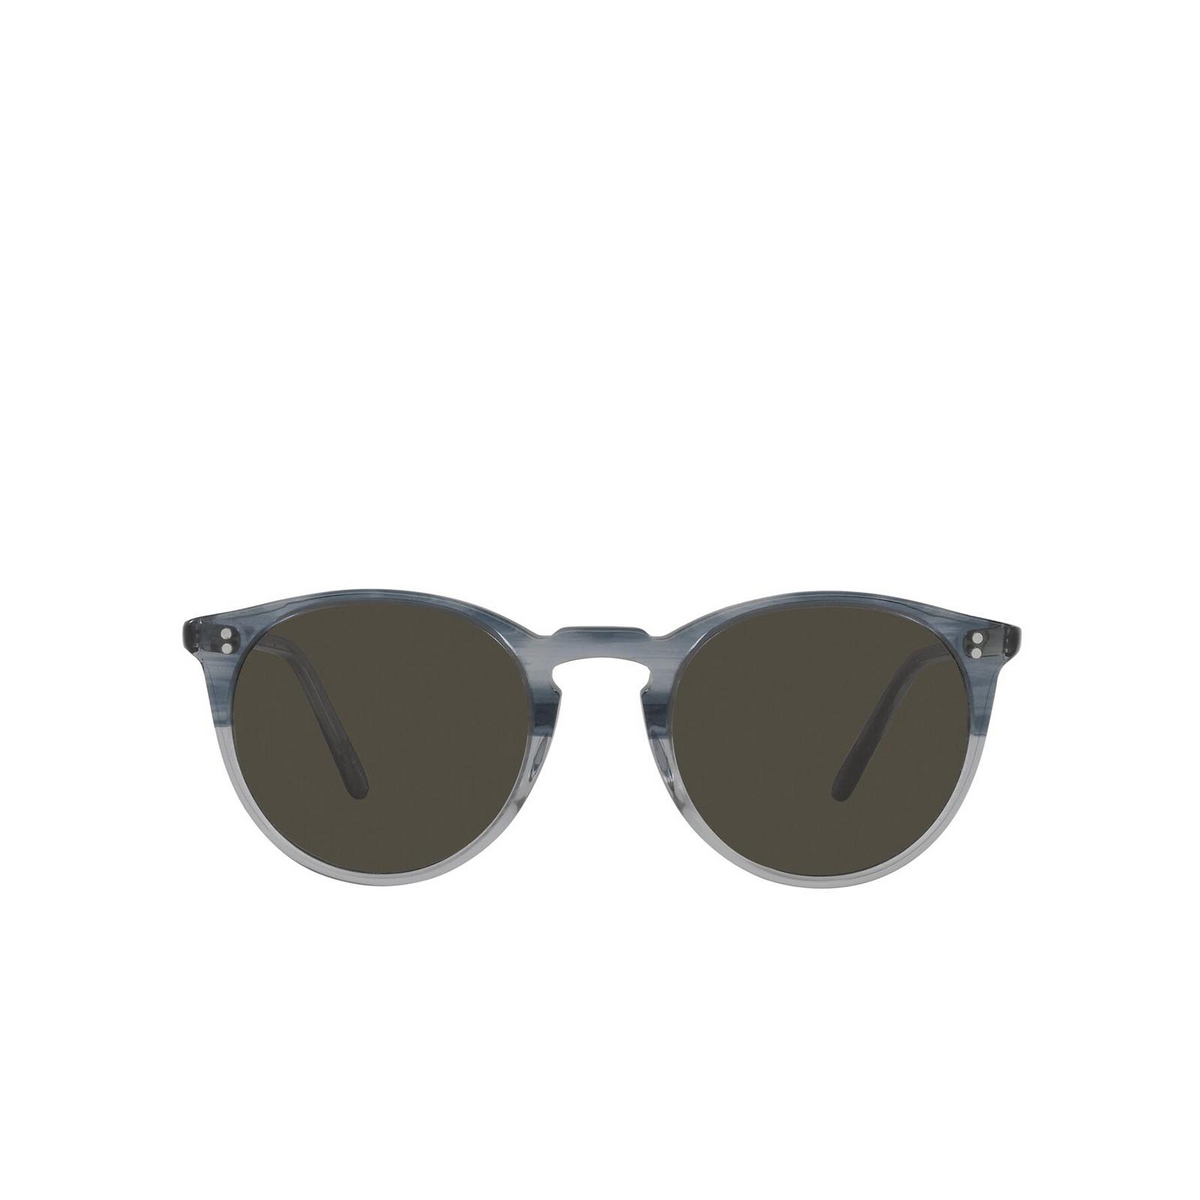 Oliver Peoples® Round Sunglasses: O'malley Sun OV5183S color Dusk Blue Vsb 1702R5 - front view.